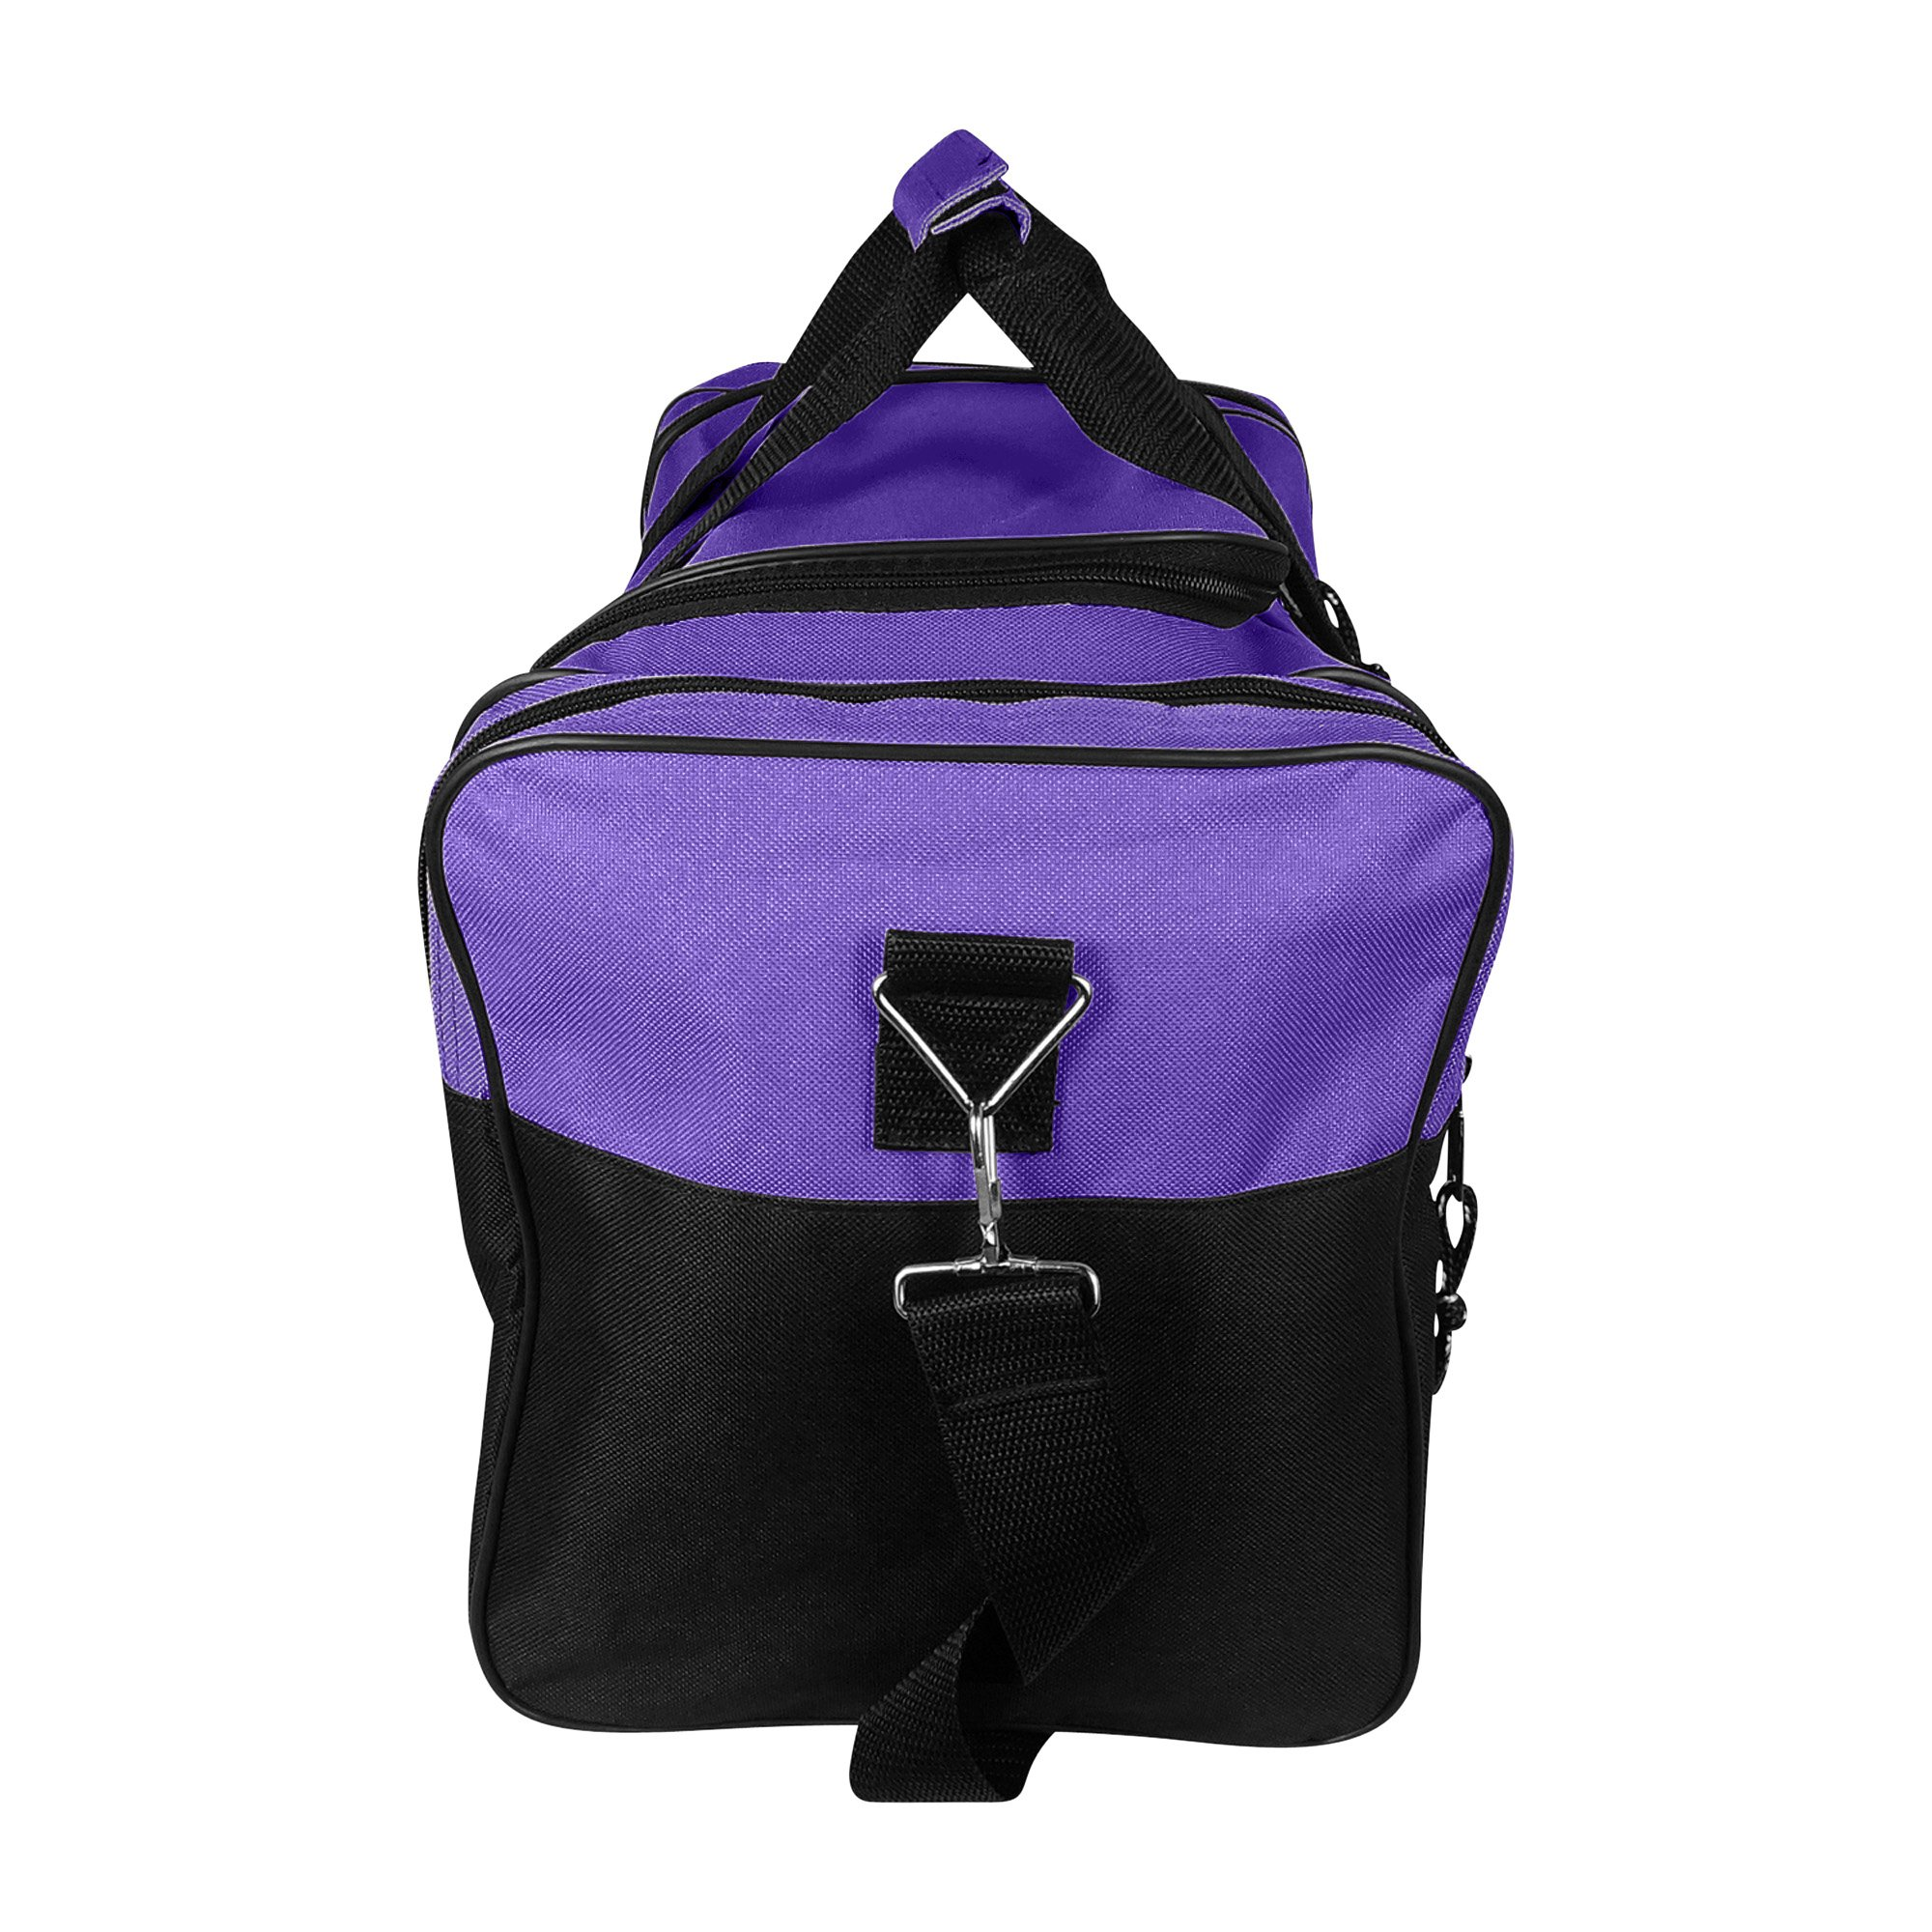 Blank Duffle Bag Duffel Bag in Black and Purple Gym Bag - DF-005 ... b42d660ed5